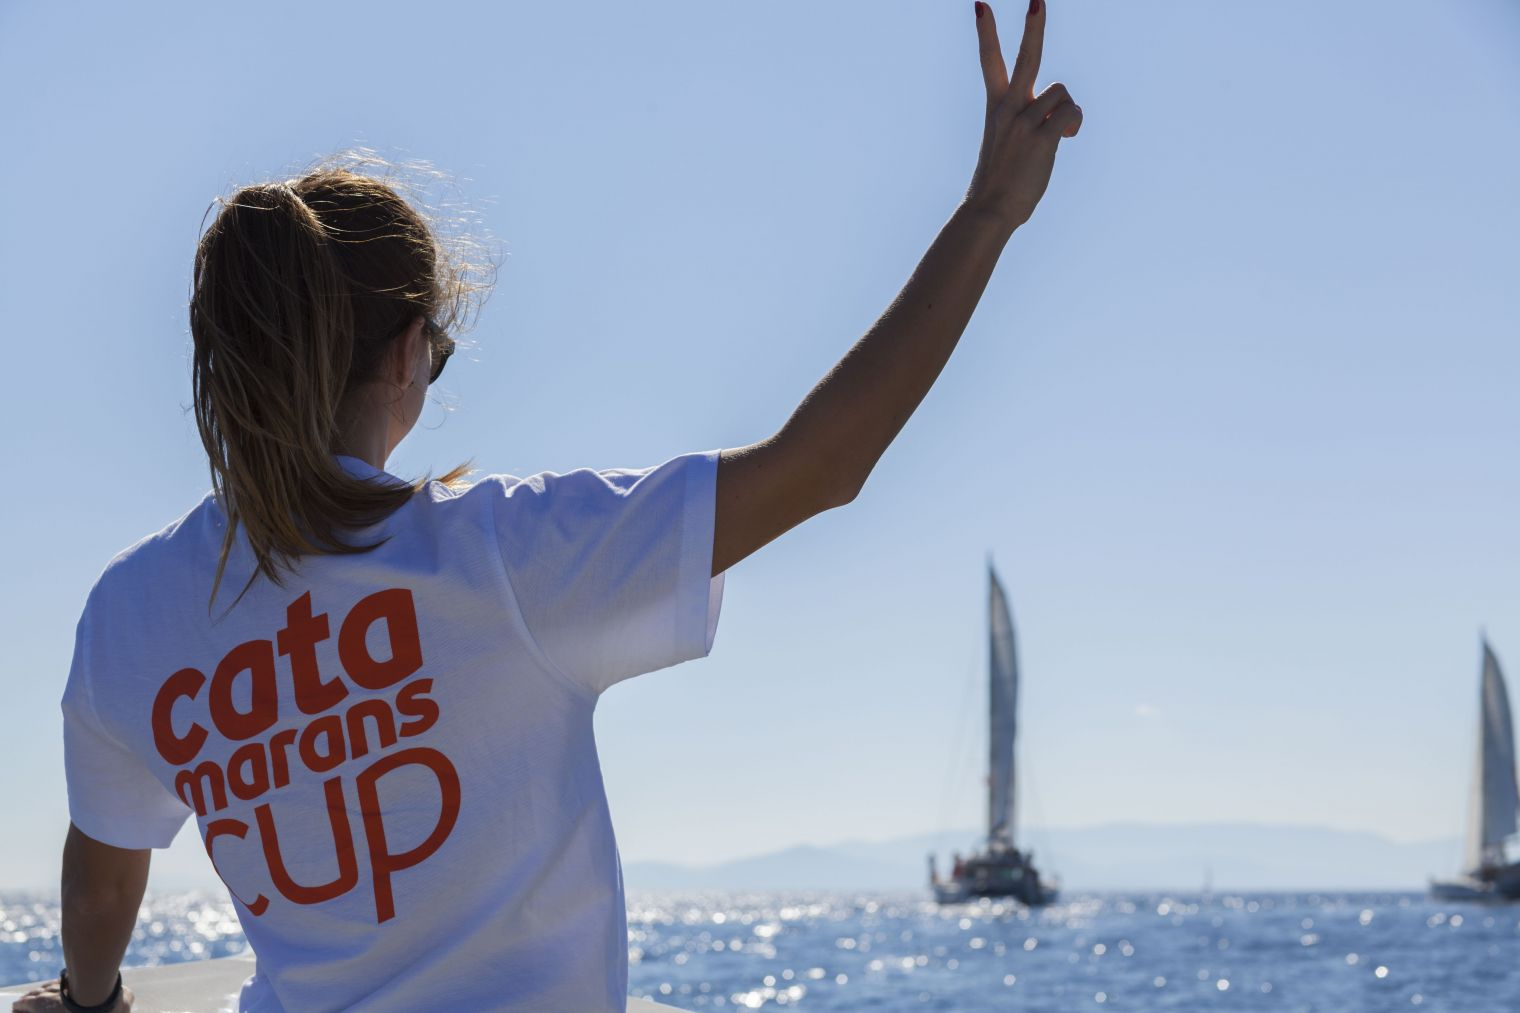 Successful 8th CATAMARANS CUP!